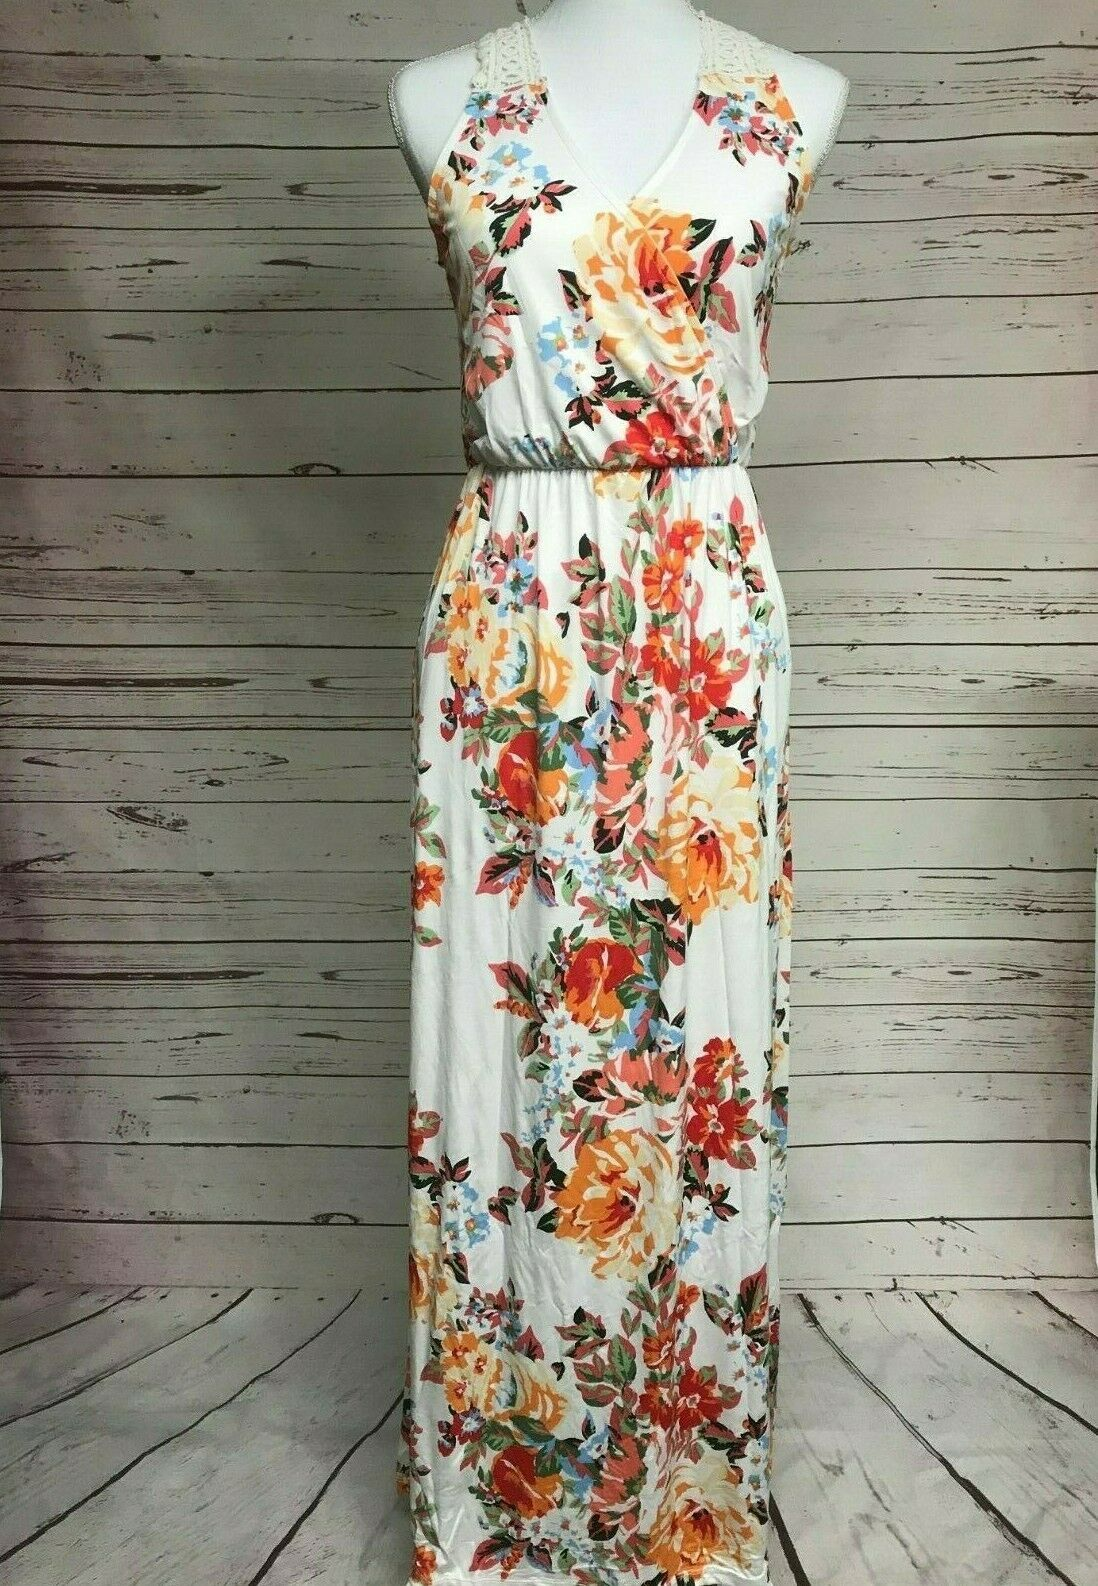 NWT Small Women's Floral Dress Summer Boutique Top